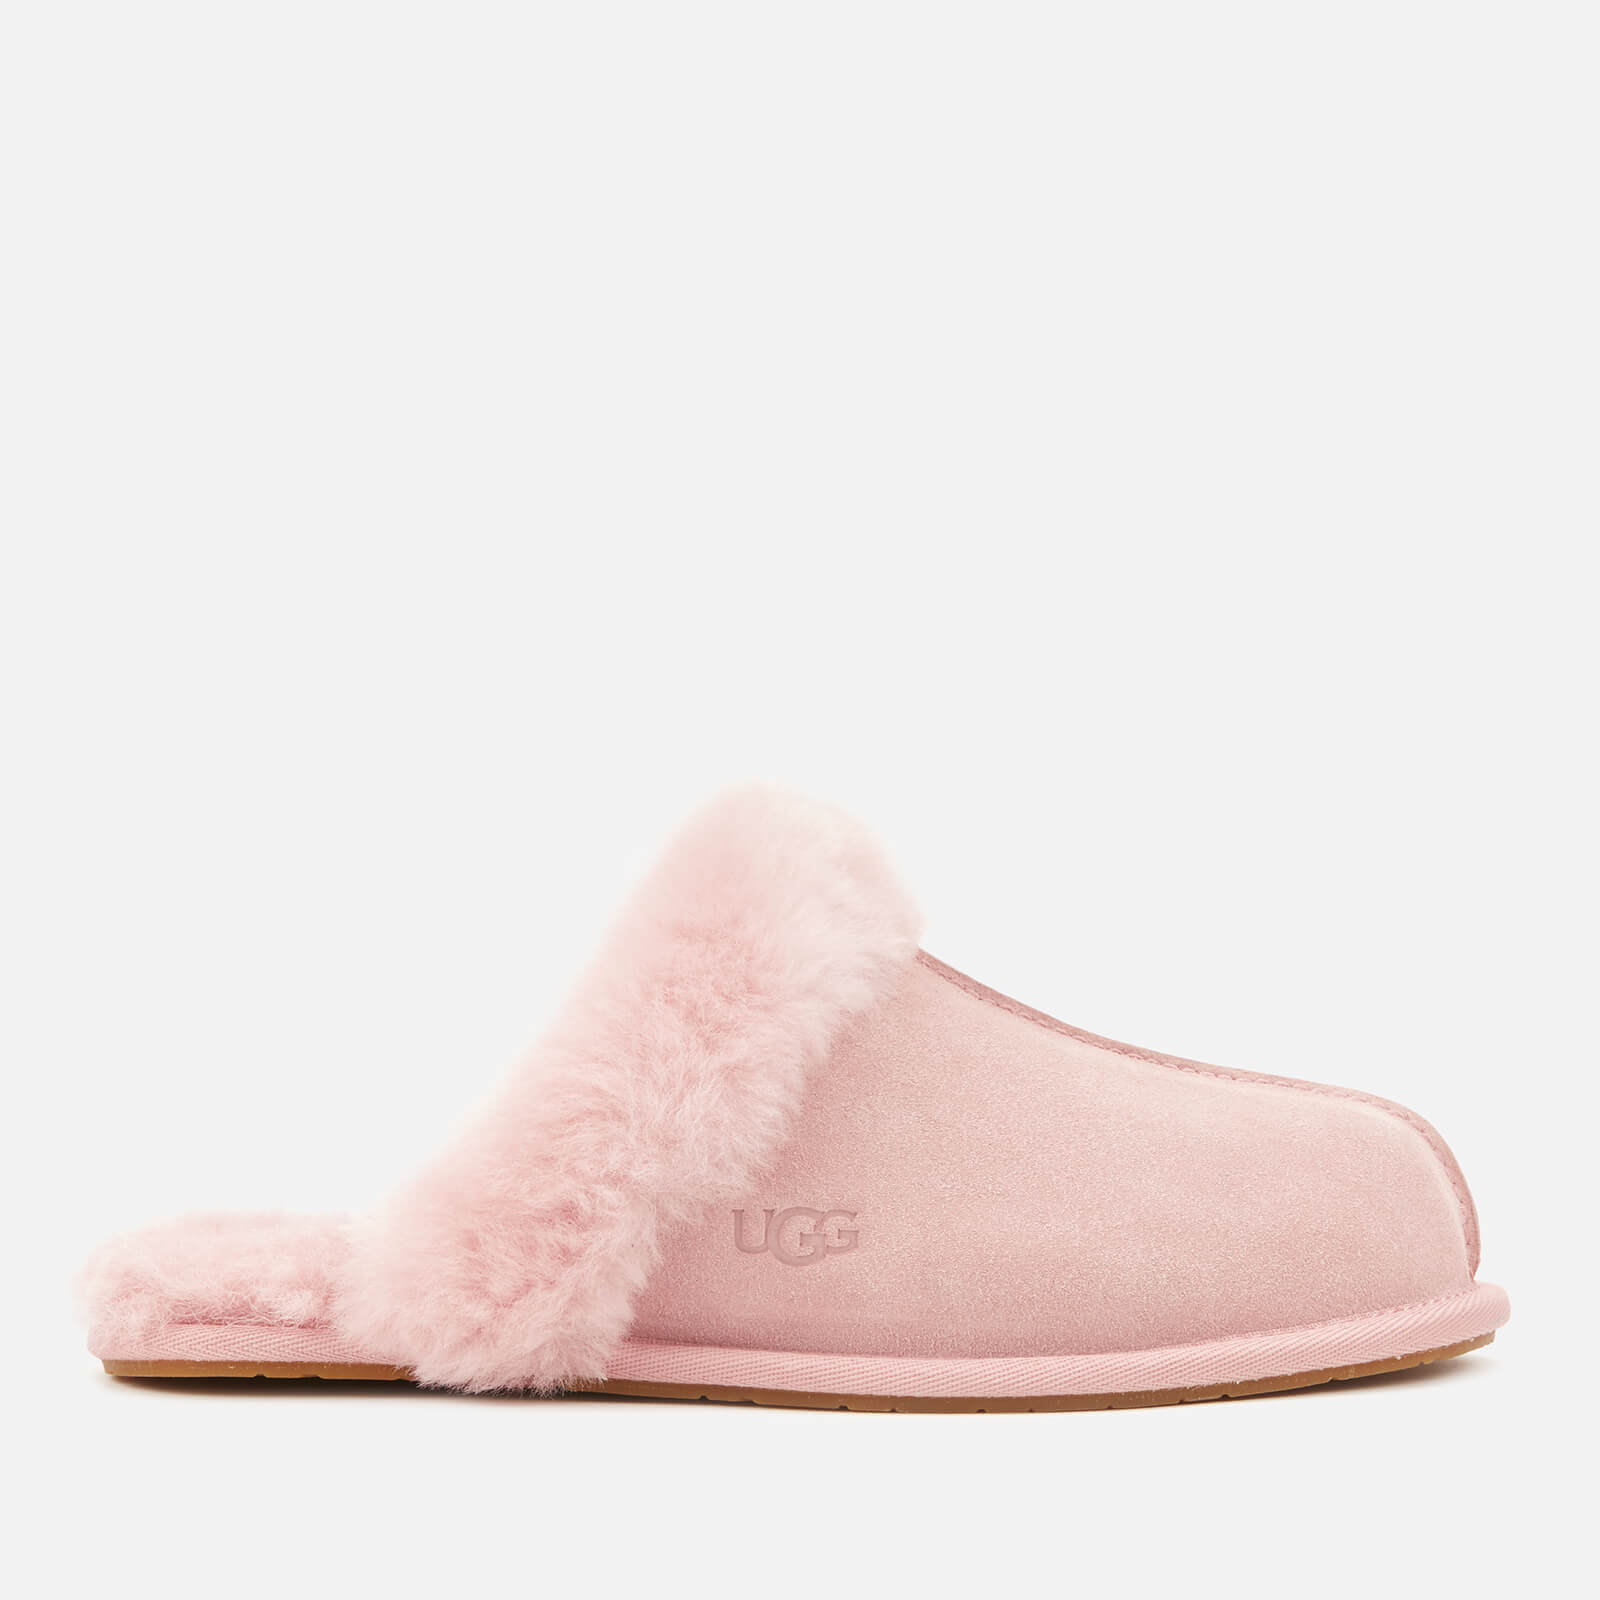 UGG Scuffette II Slippers Pink Crystal Flats